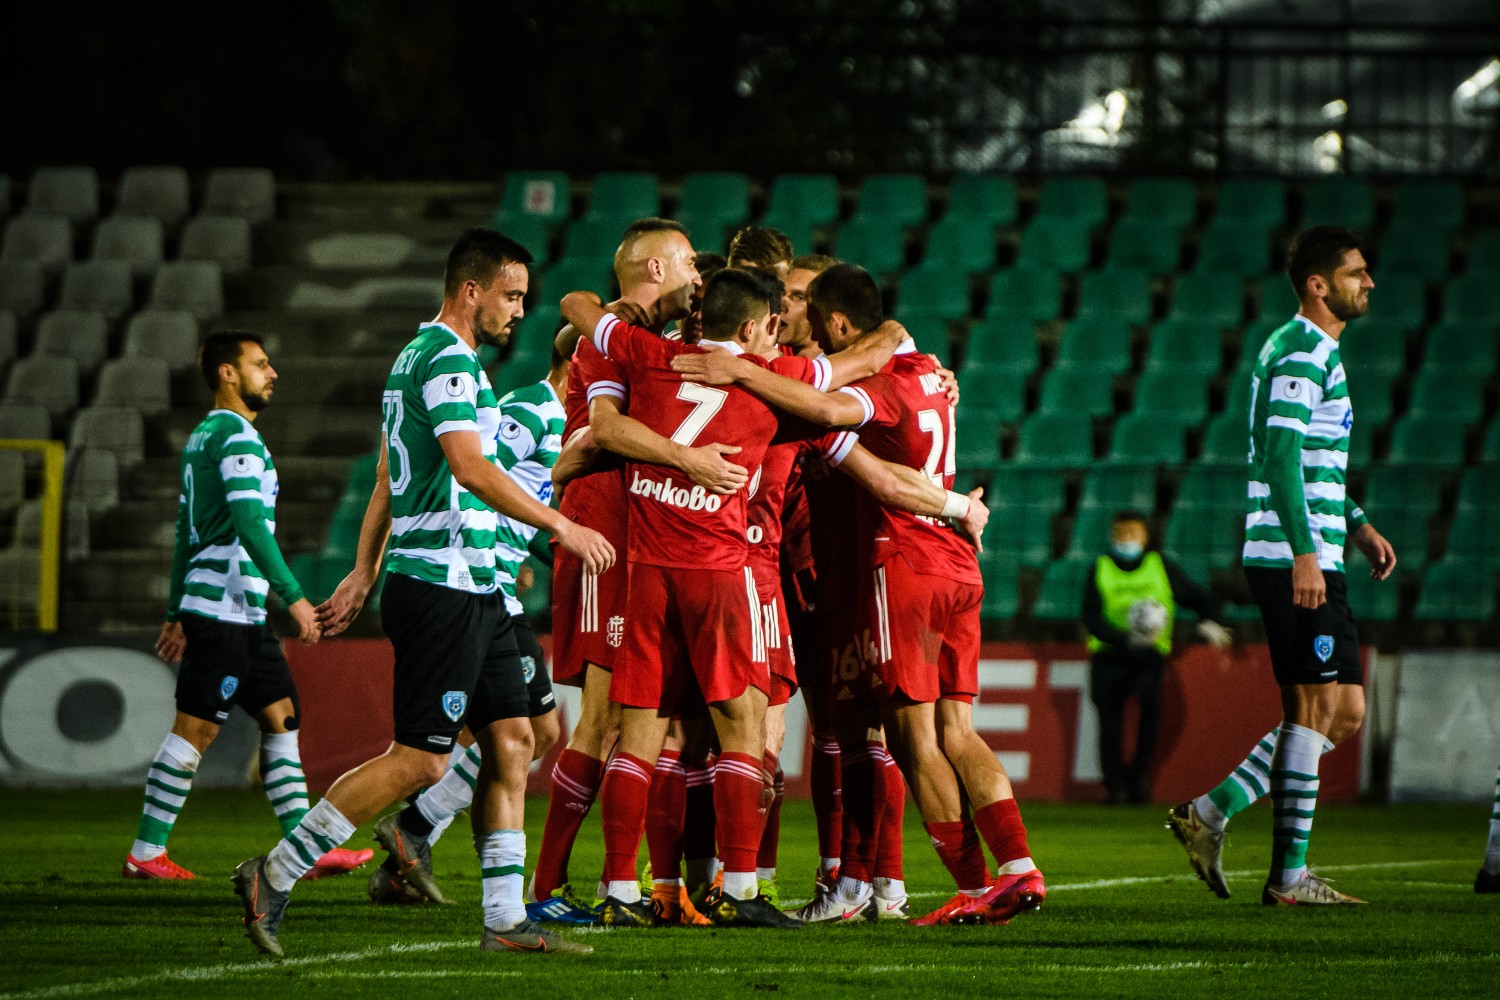 CSKA 1948 with a 2:1 win in Varna after a comeback